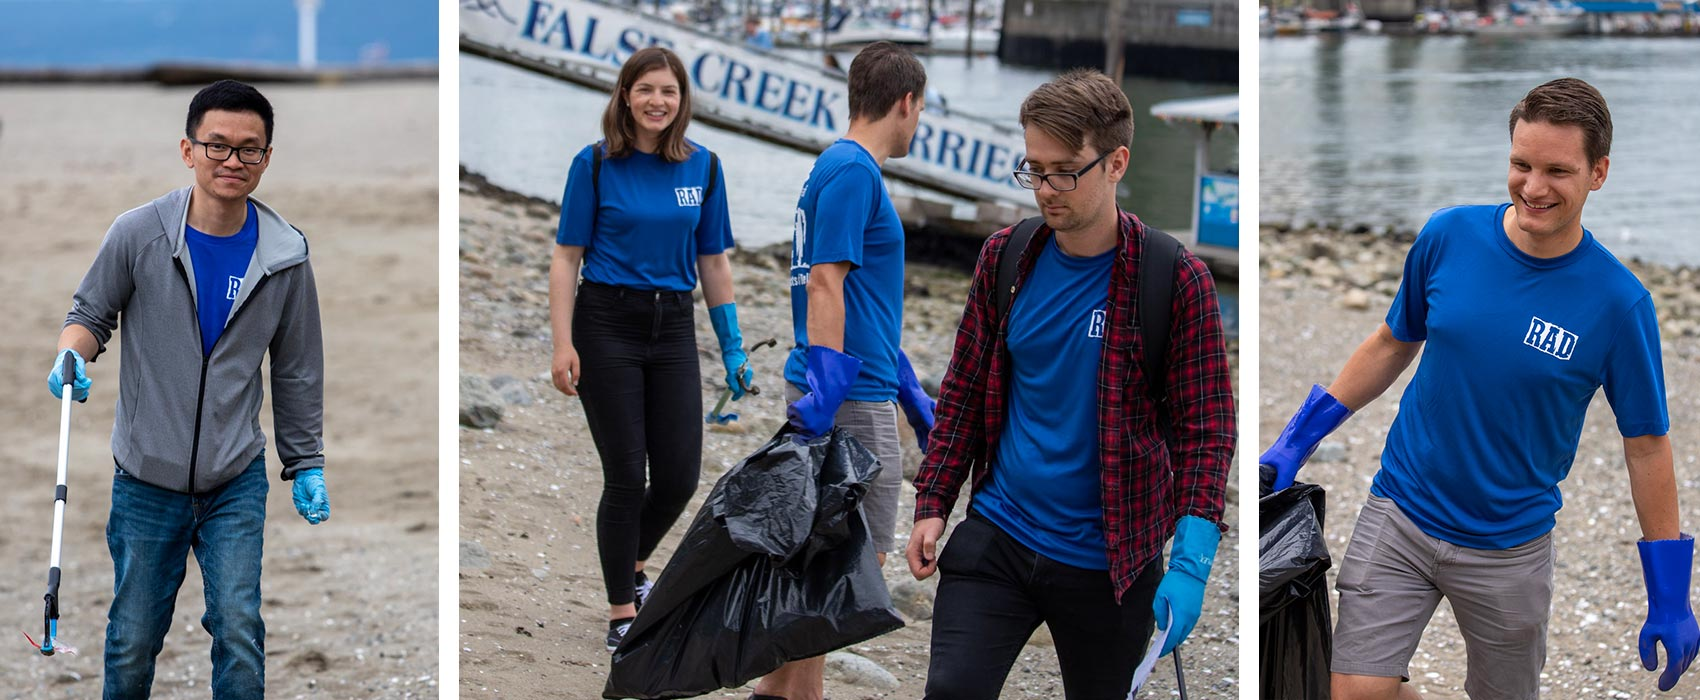 Copperleaf's RAD Initiative Participates in the Great Canadian Shoreline Cleanup | Copperleaf